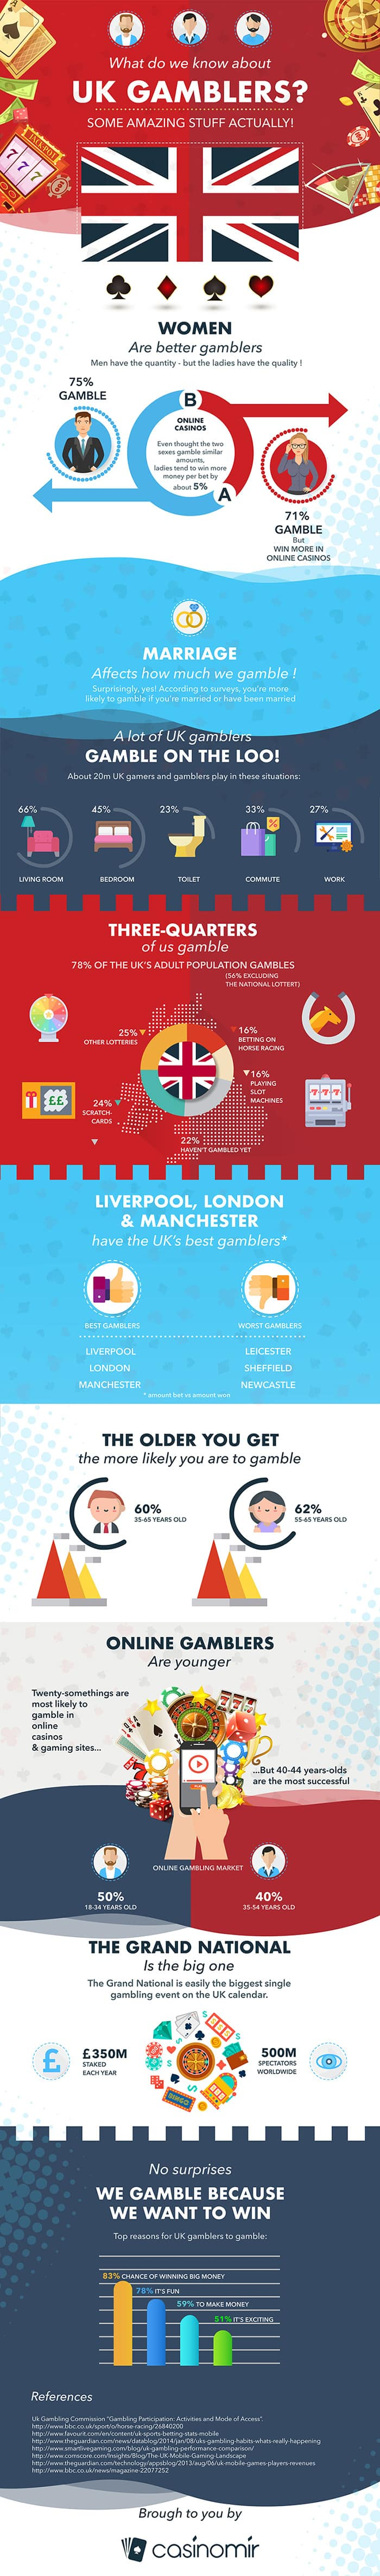 UK Gamblers Fun Fact Infographic